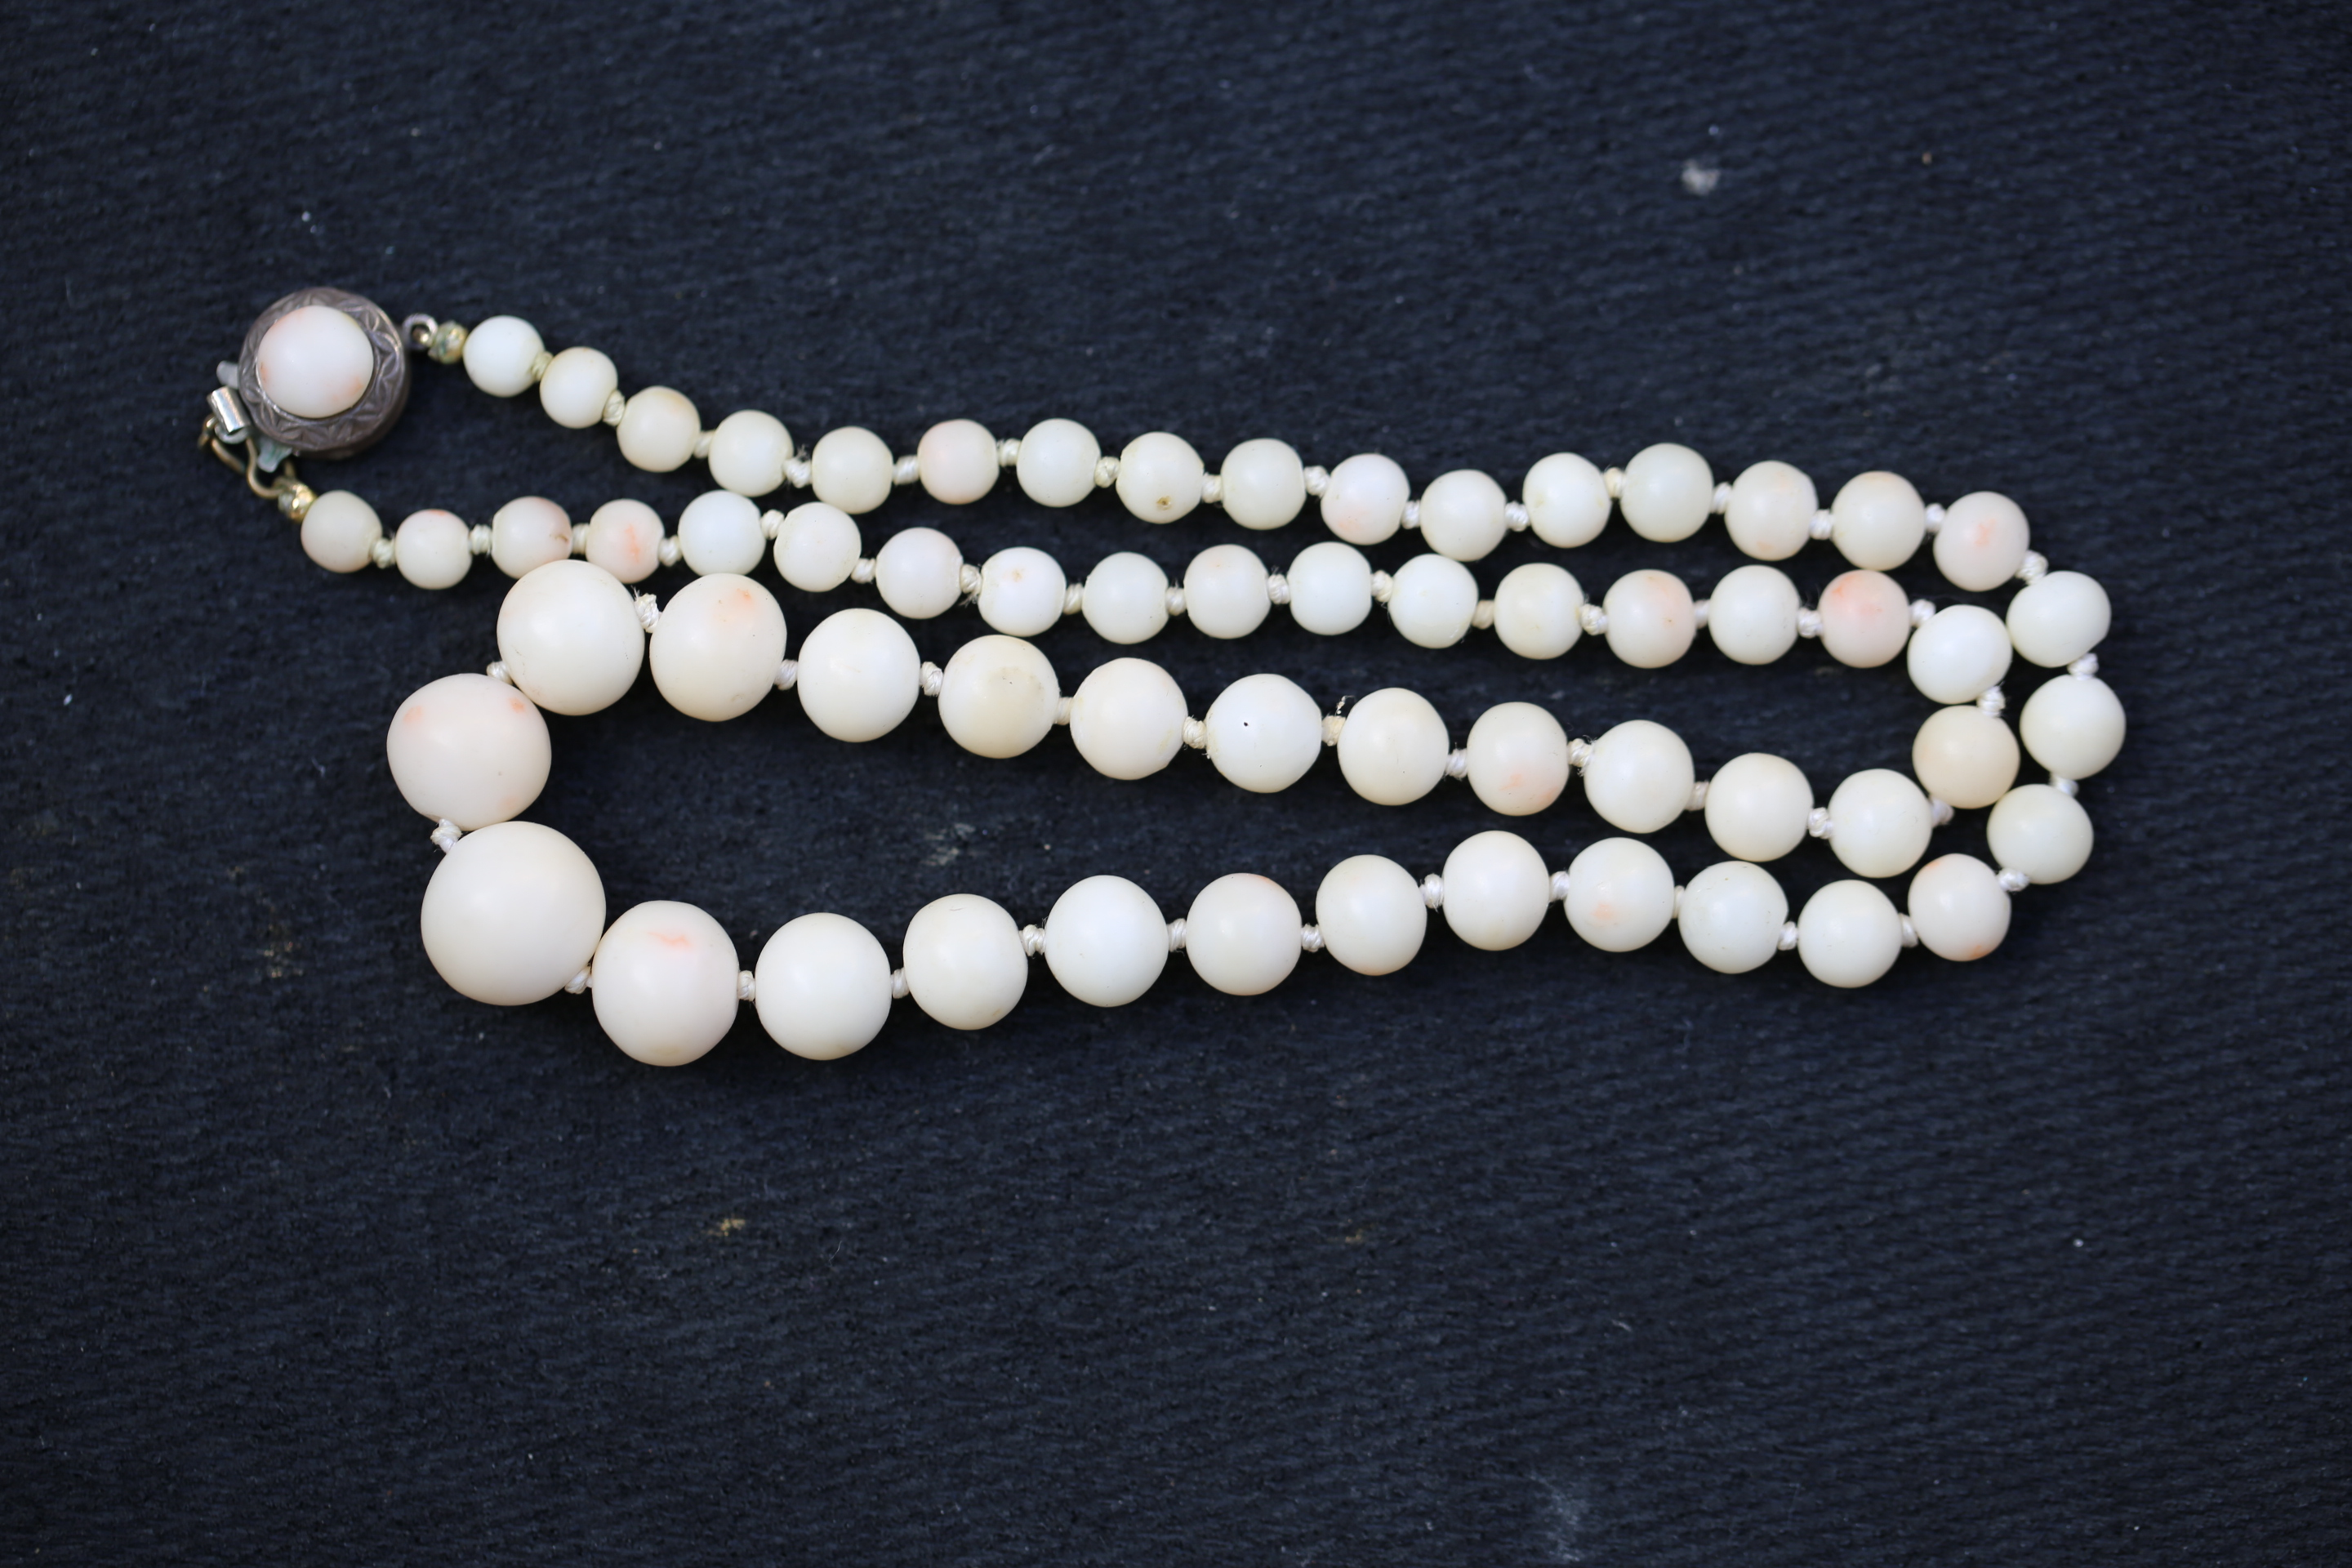 Jewelry039 Estate white coral necklace 18 inches long weight 30.